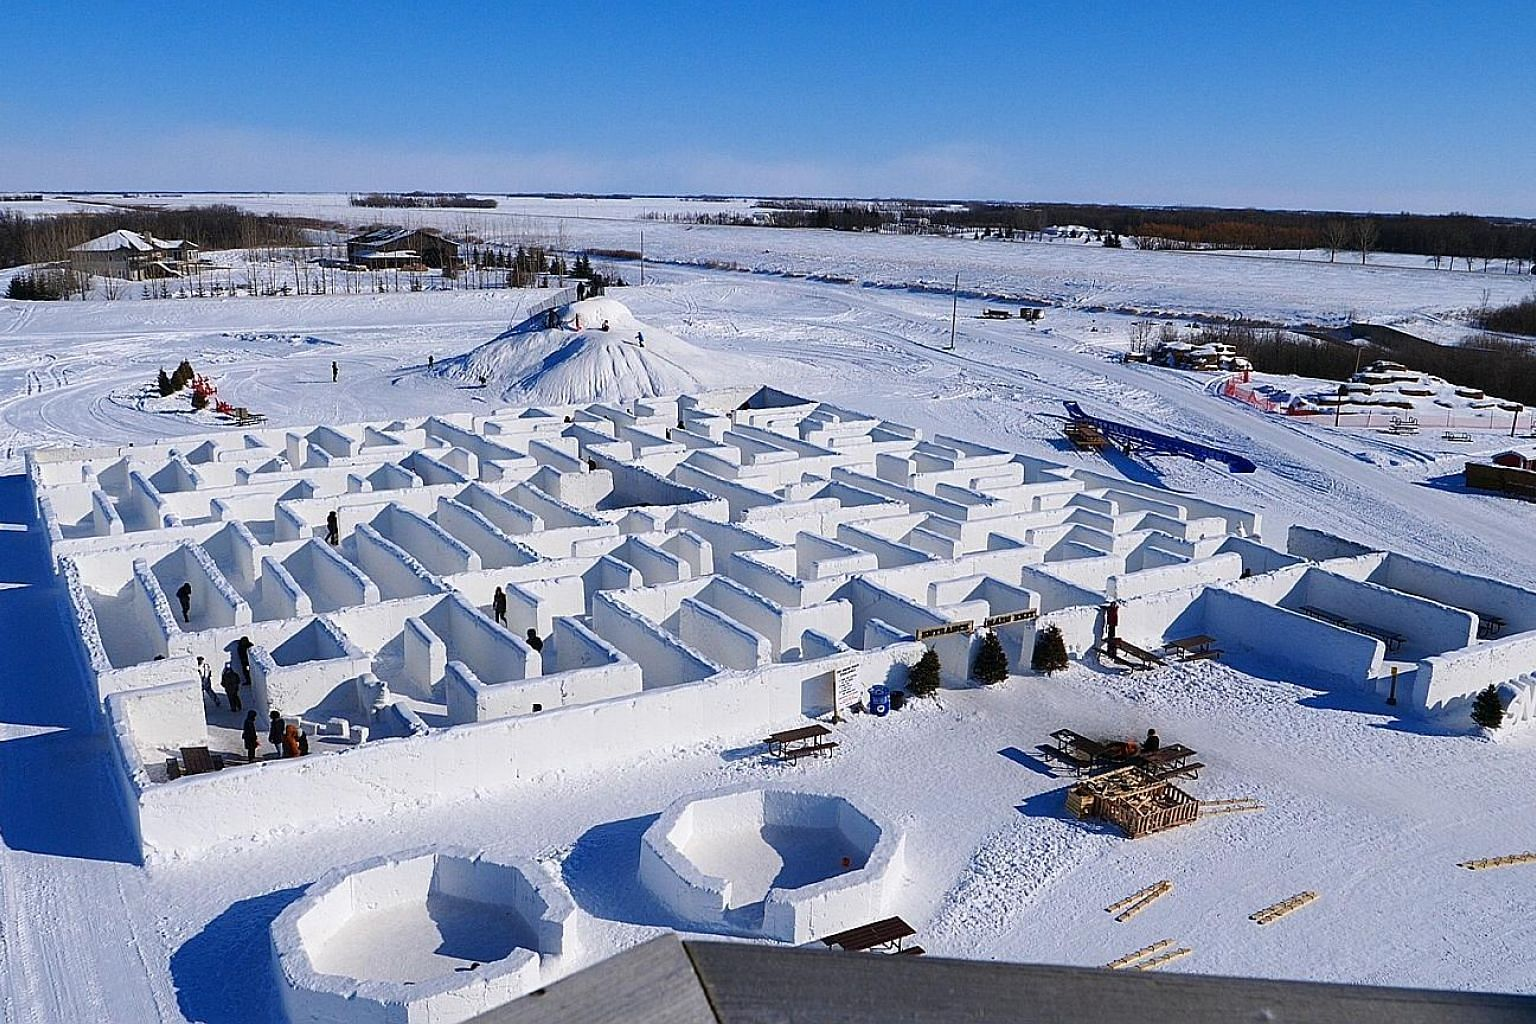 Visitors wandering in the labyrinth built by farmers Clint and Angie Masse in St Adolphe, Canada. The snow maze, which took several weeks and thousands of dollars to plan, measures 2,789.11 sq m.